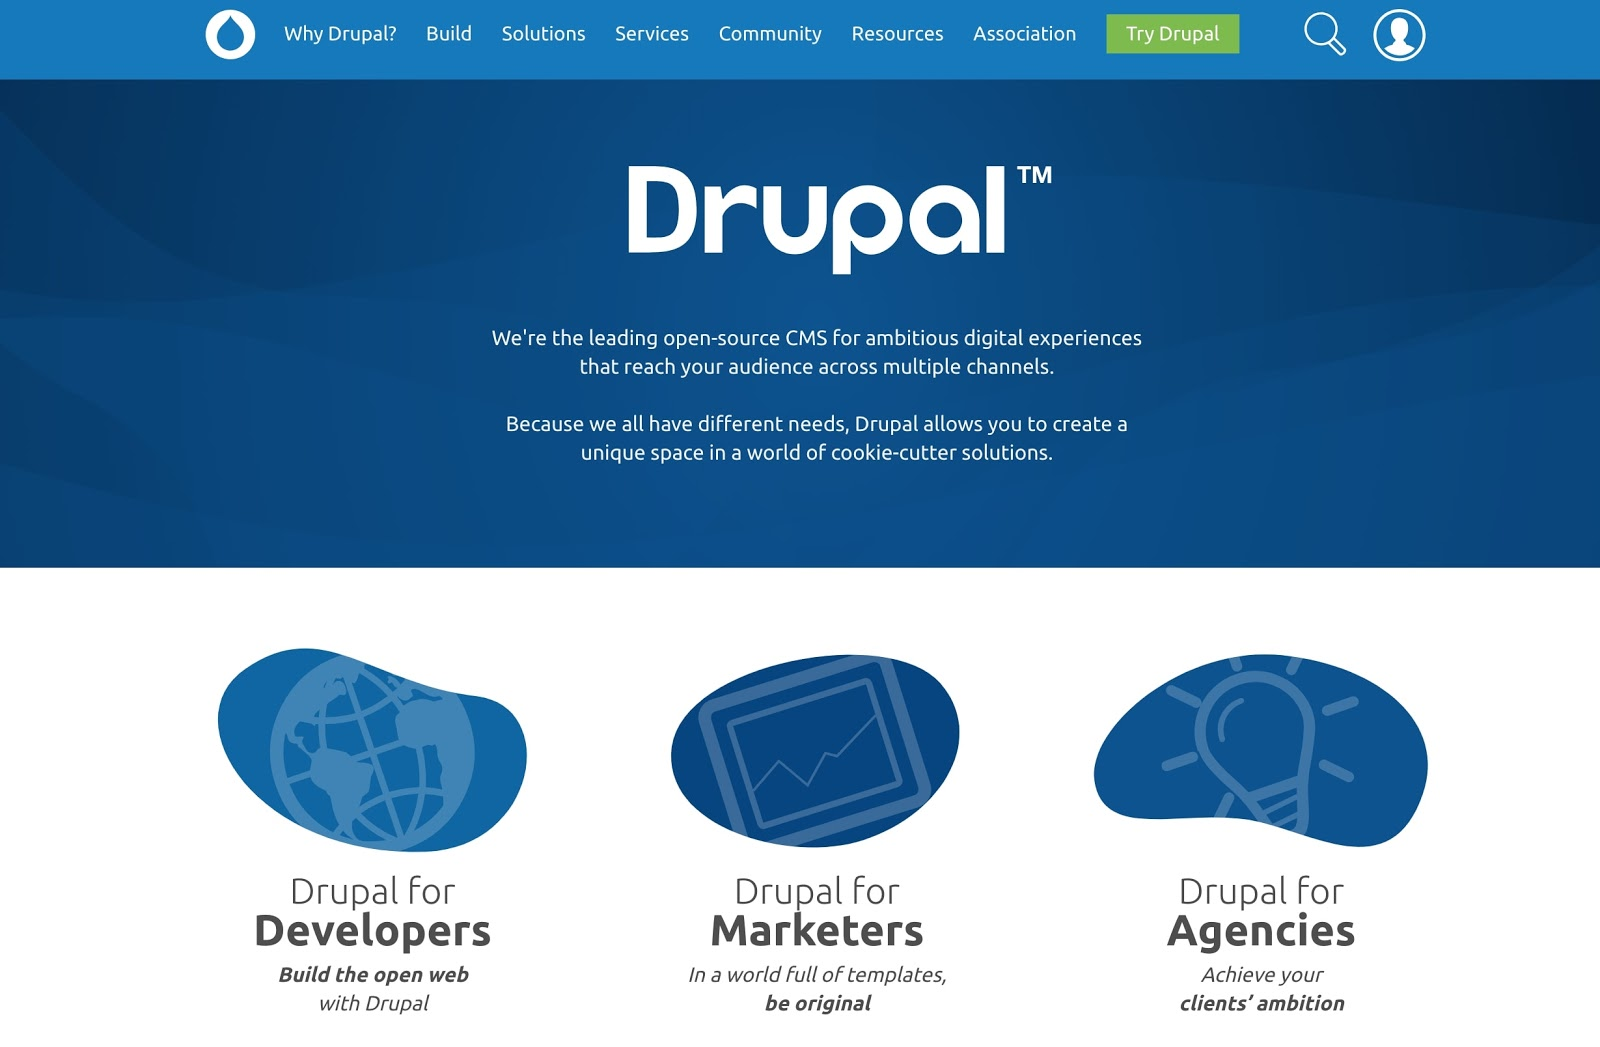 The Drupal homepage